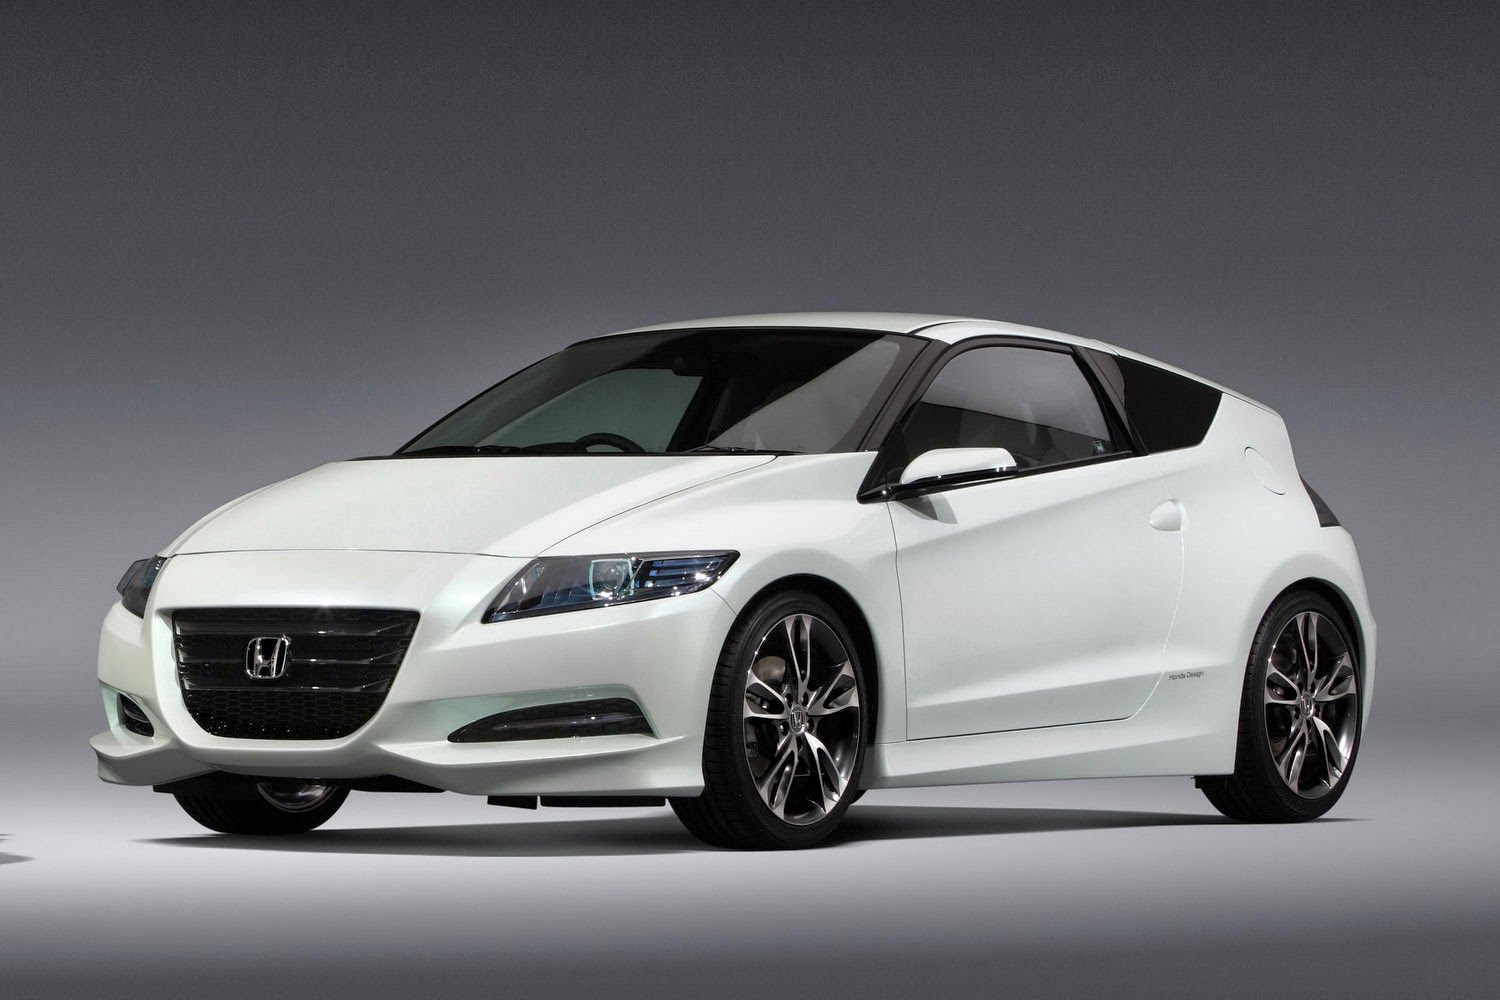 Honda, CR-Z, 2 doors, cool, nice, sport, sporty, Japan, Transmision Manual, Transmision Automatic